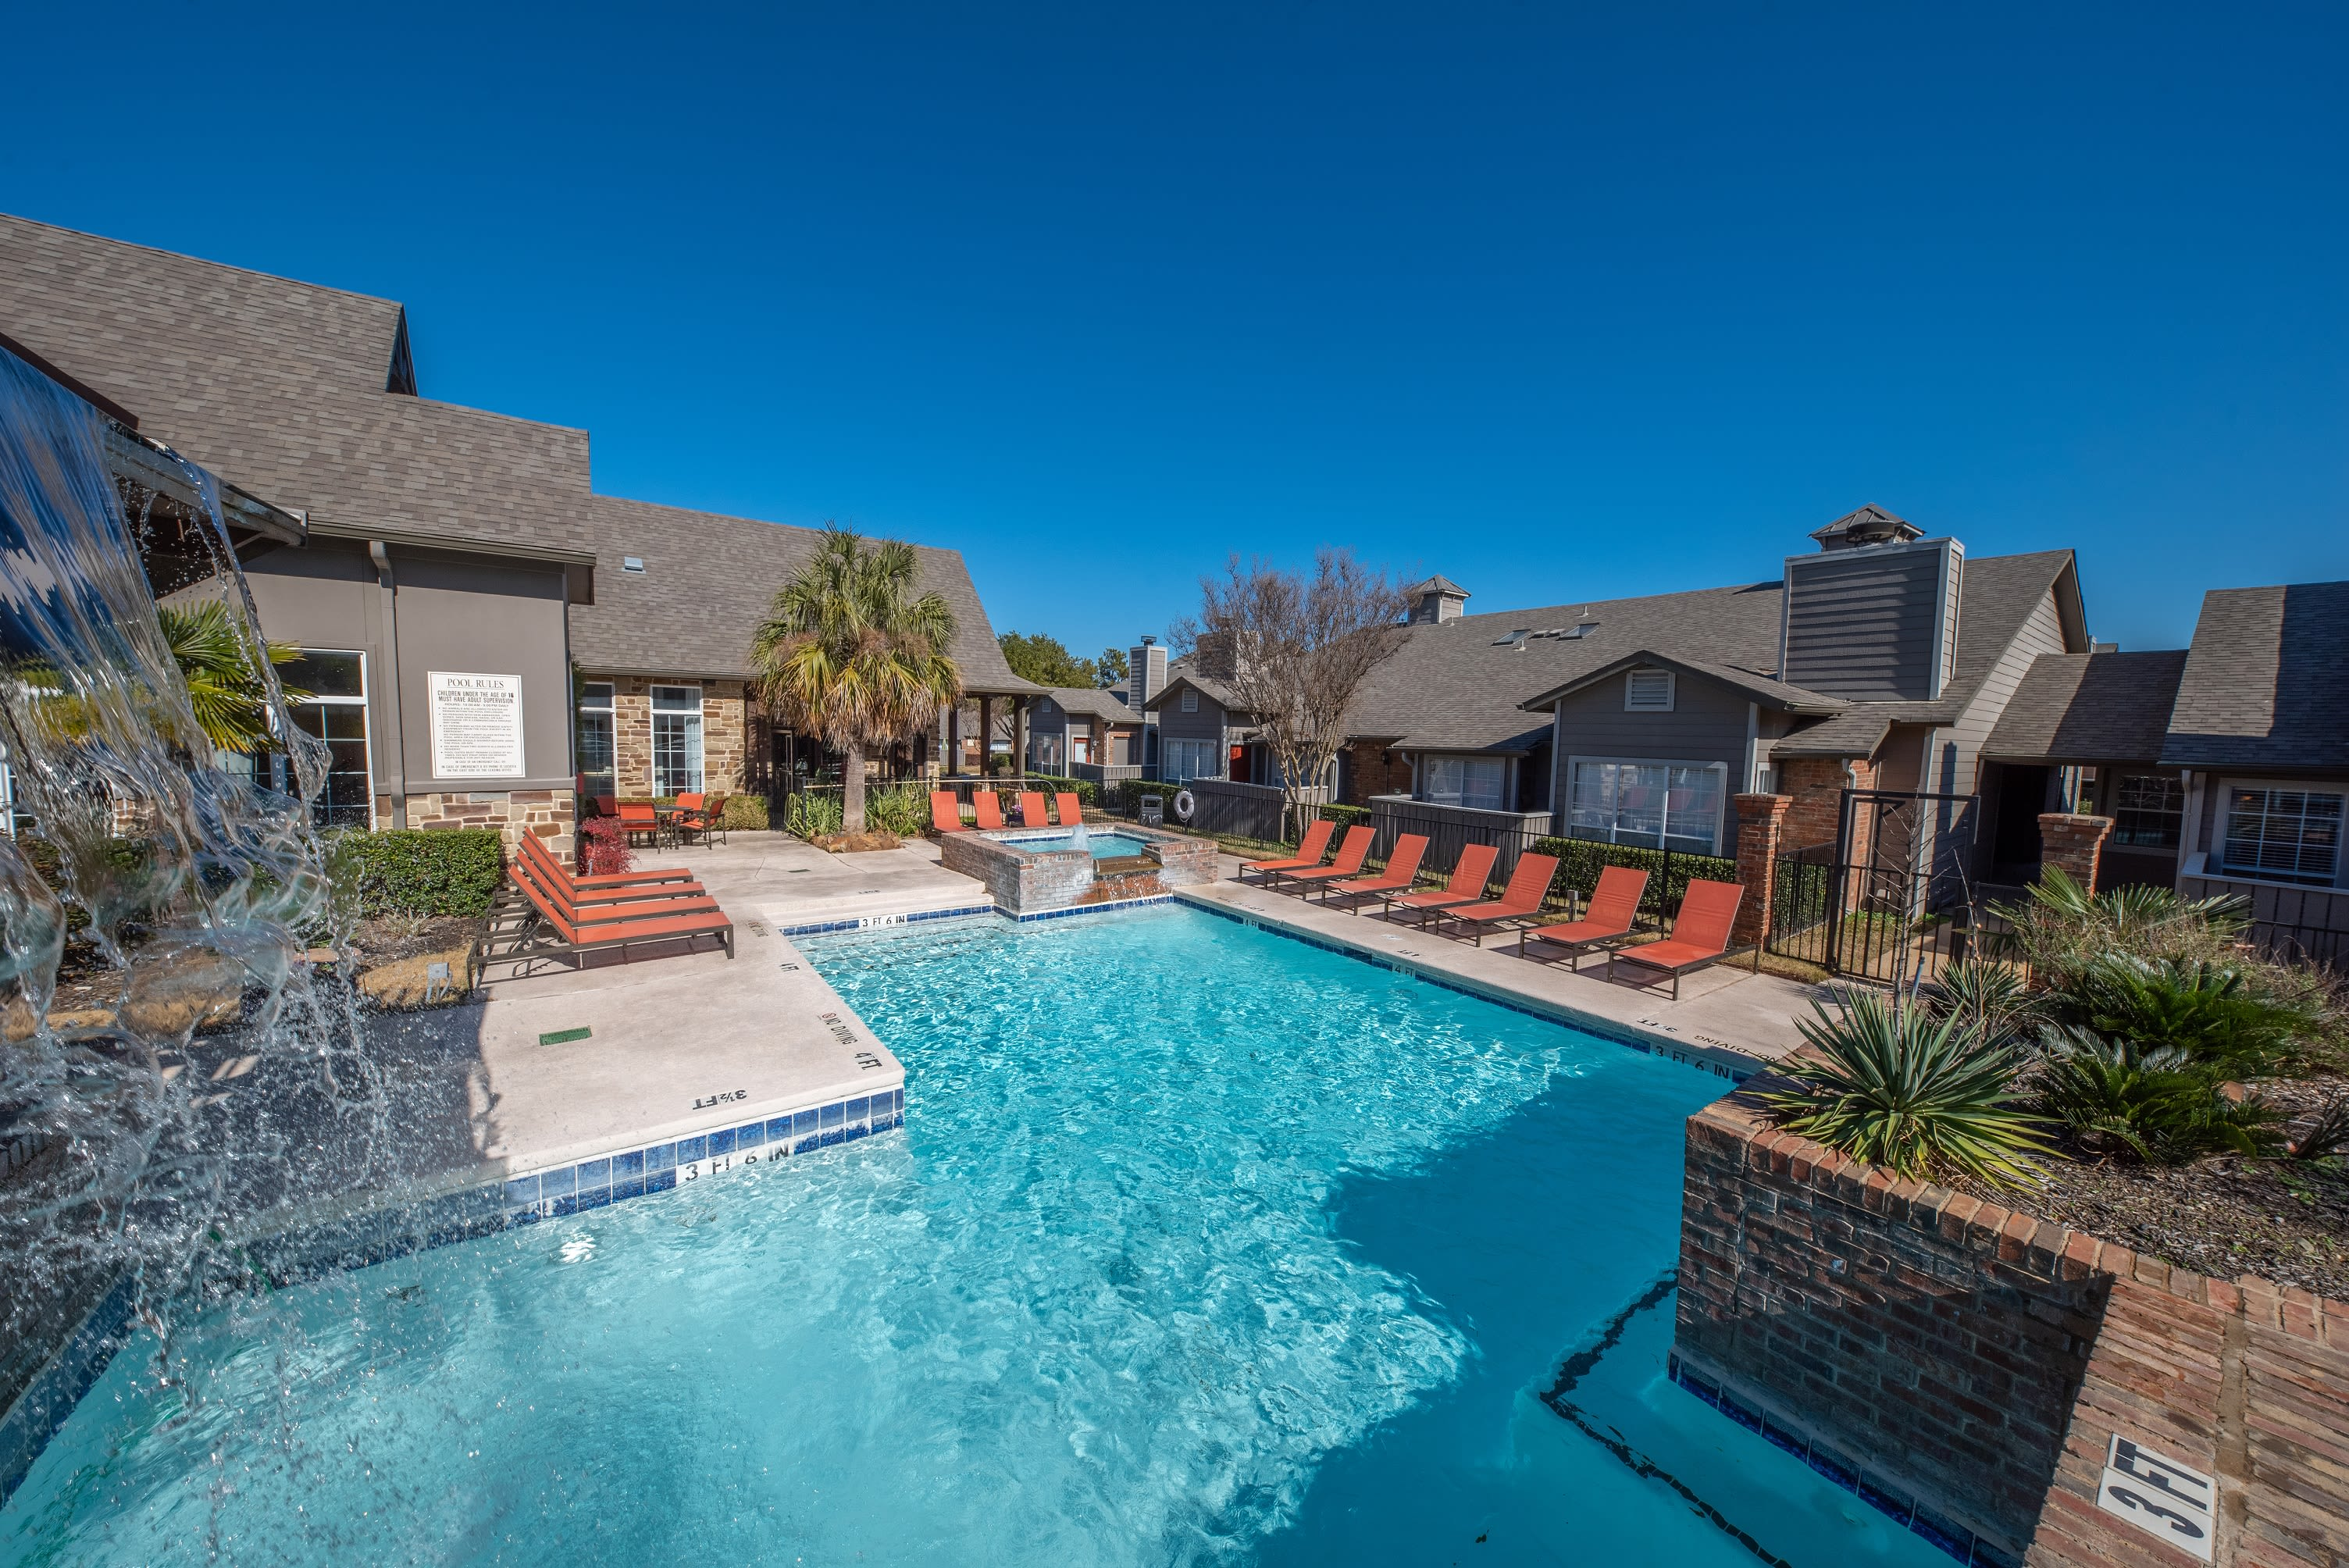 Resort style pool with lounge chairs at Village Green of Bear Creek in Euless, Texas